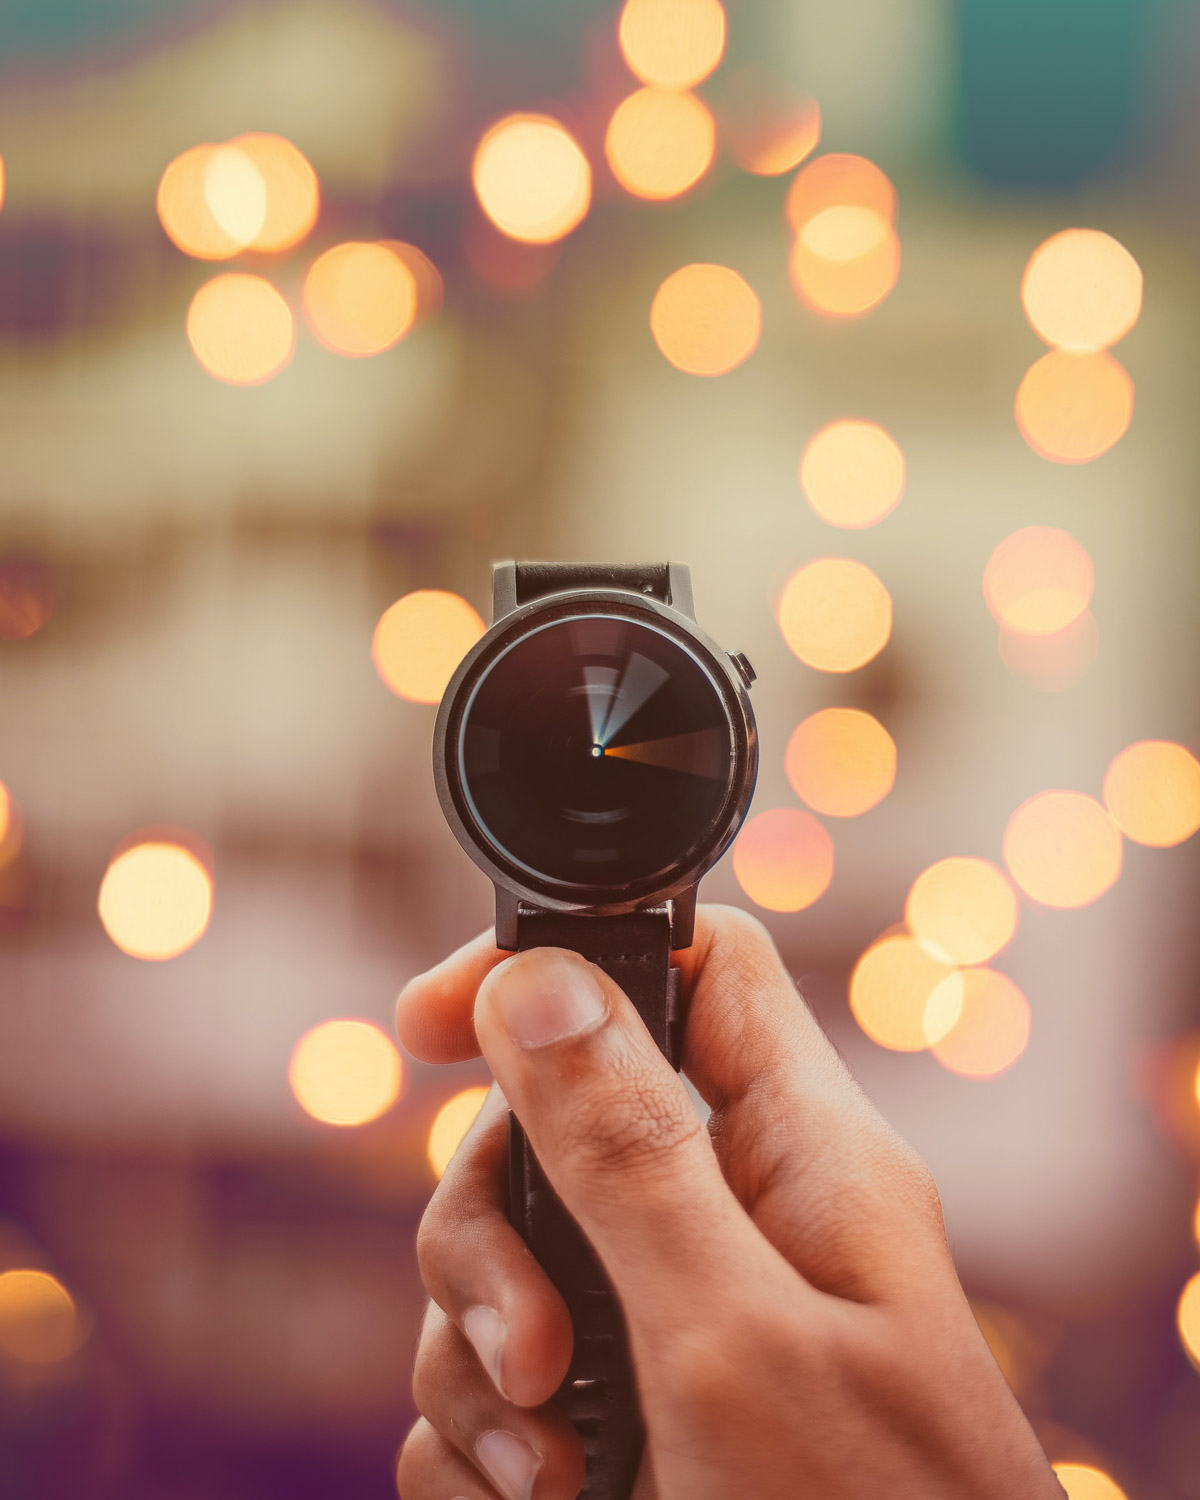 watch with spinning hands capture motion blur photography